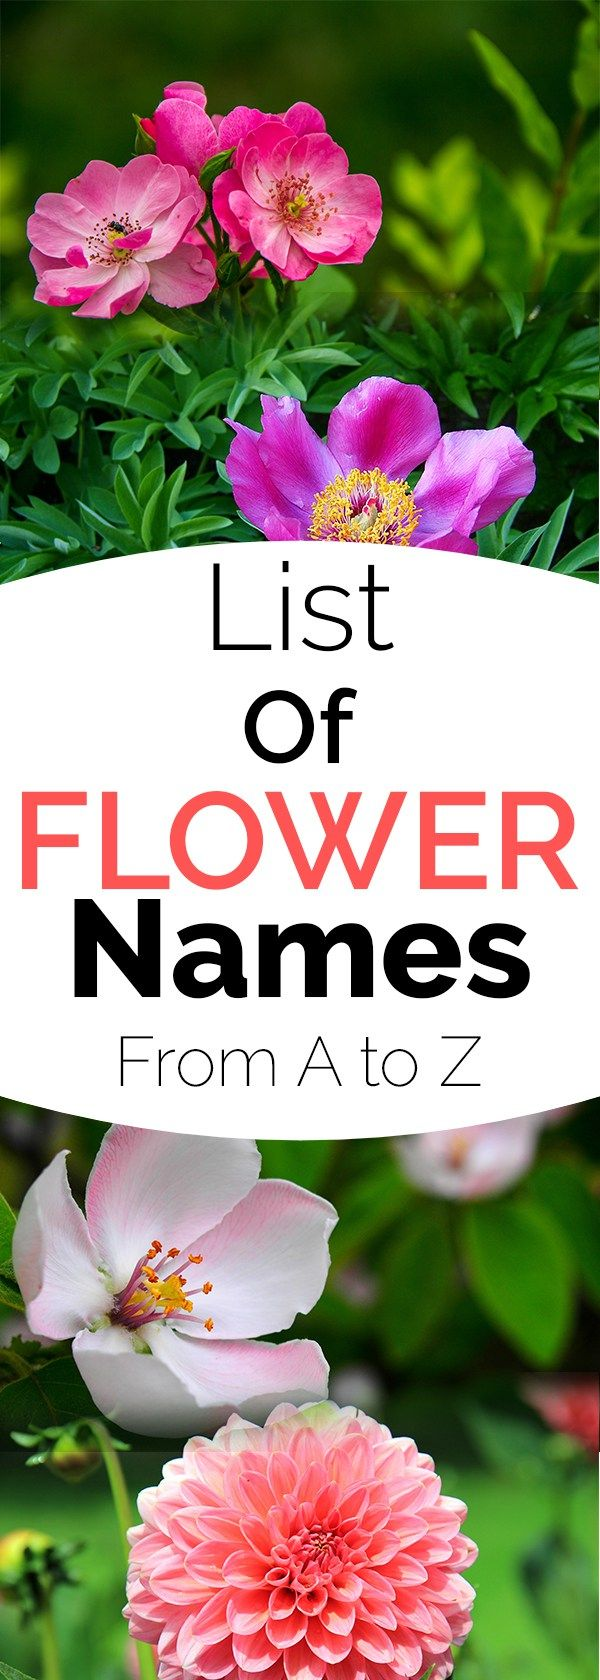 List of Flower Names, from A to Z (With images) Flowers